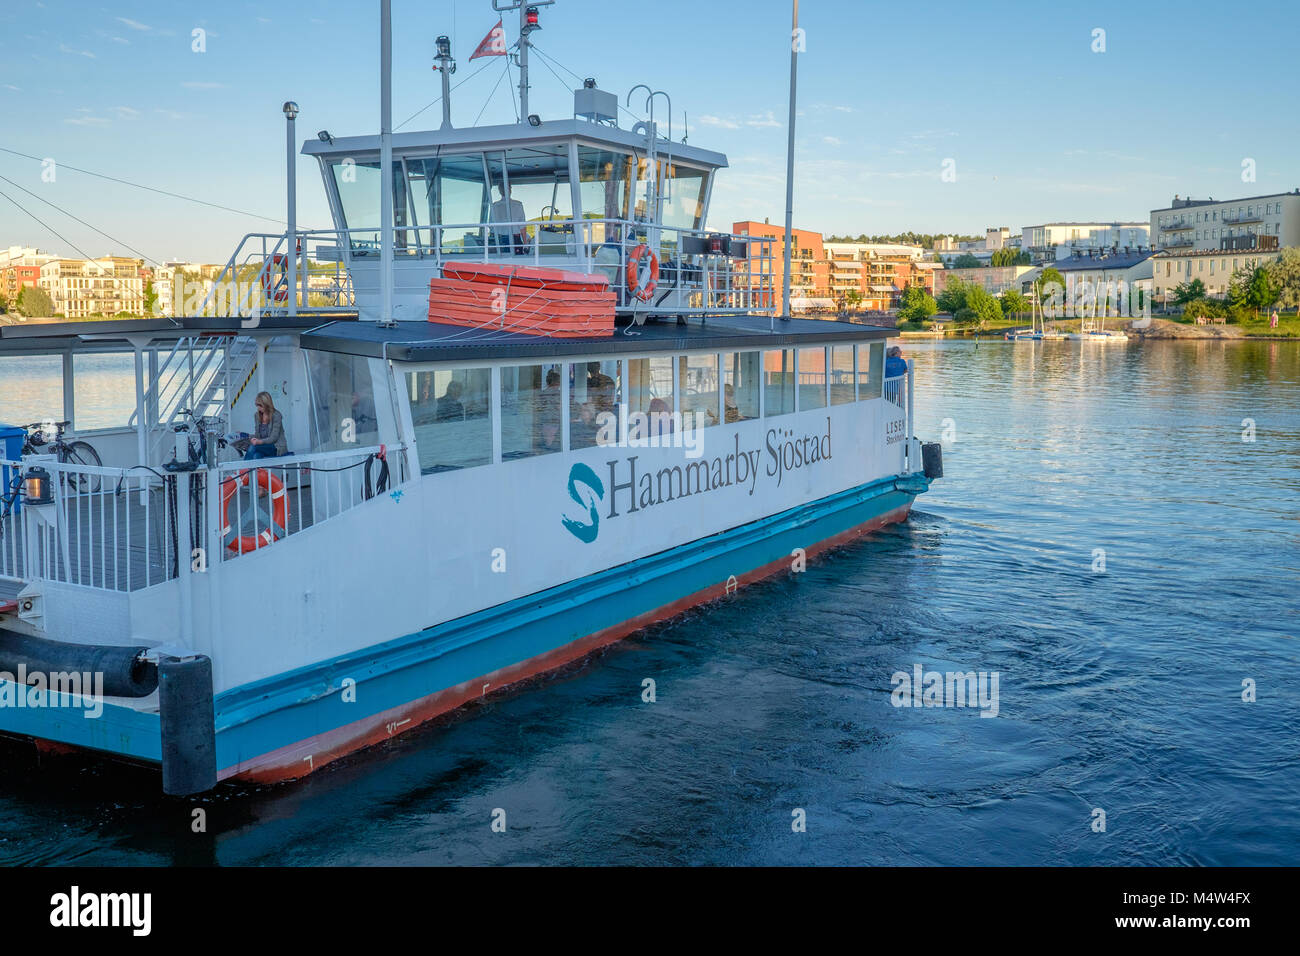 Ferry to Hammarby Sjöstad during a summer evening in Stockholm. This is a fashionable new residential area - Stock Image